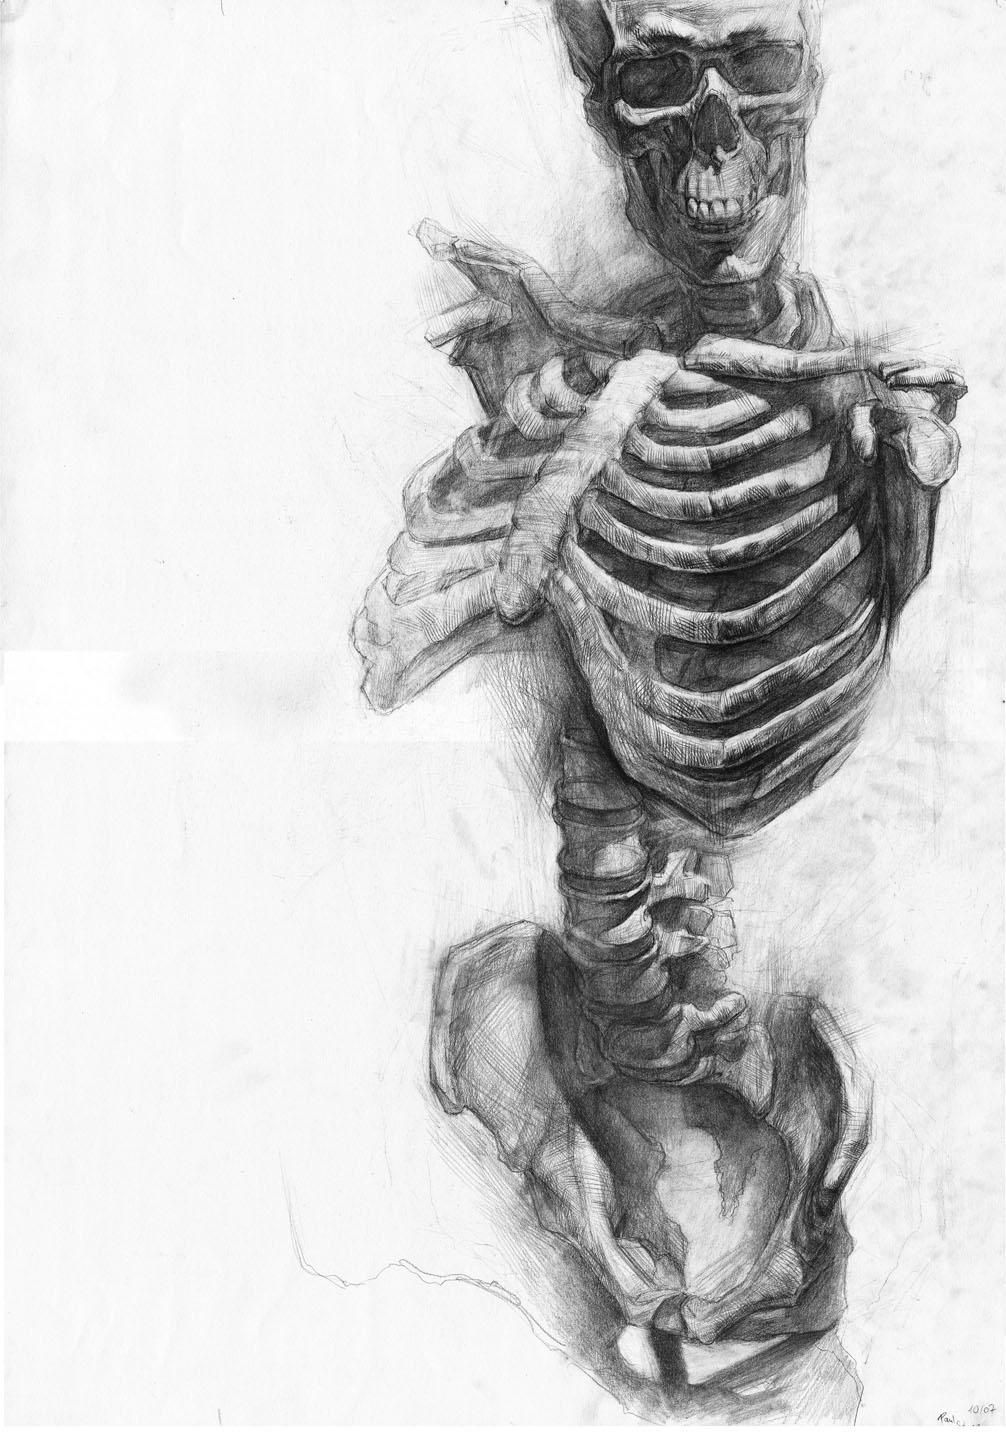 Skeleton Drawing To Get Unusual Compositions Pay Attention To The